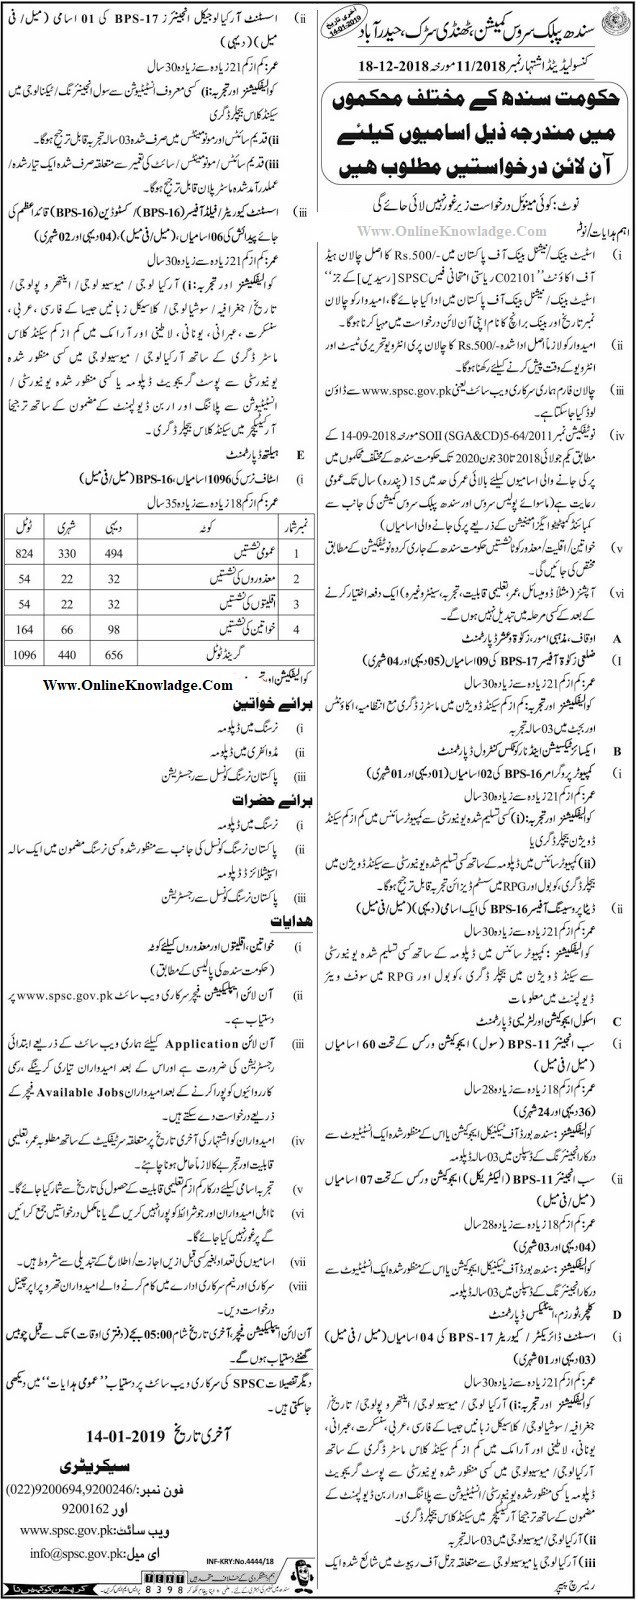 Sindh Public Service Commission (SPSC) Sindh Jobs 2019  www.spsc.gov.pk 2019  spsc login  sindh public service commission jobs 2019  spsc candidate list  spsc slip download  spsc screening test syllabus 2019  spsc help  spsc cce 2019